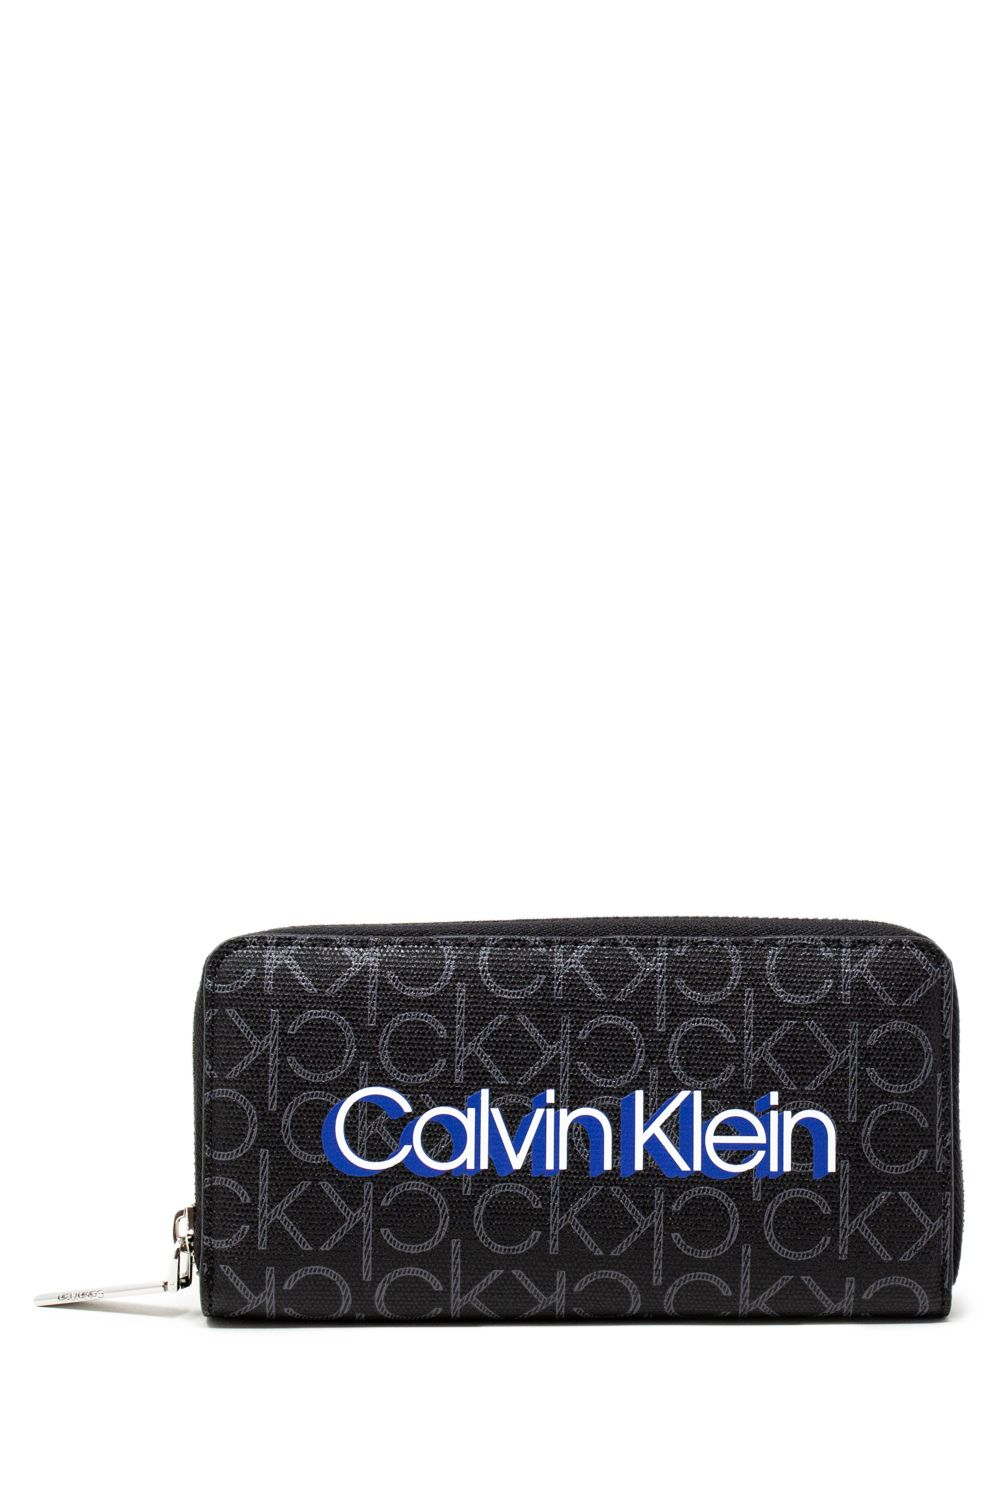 Calvin Klein Black Wallet